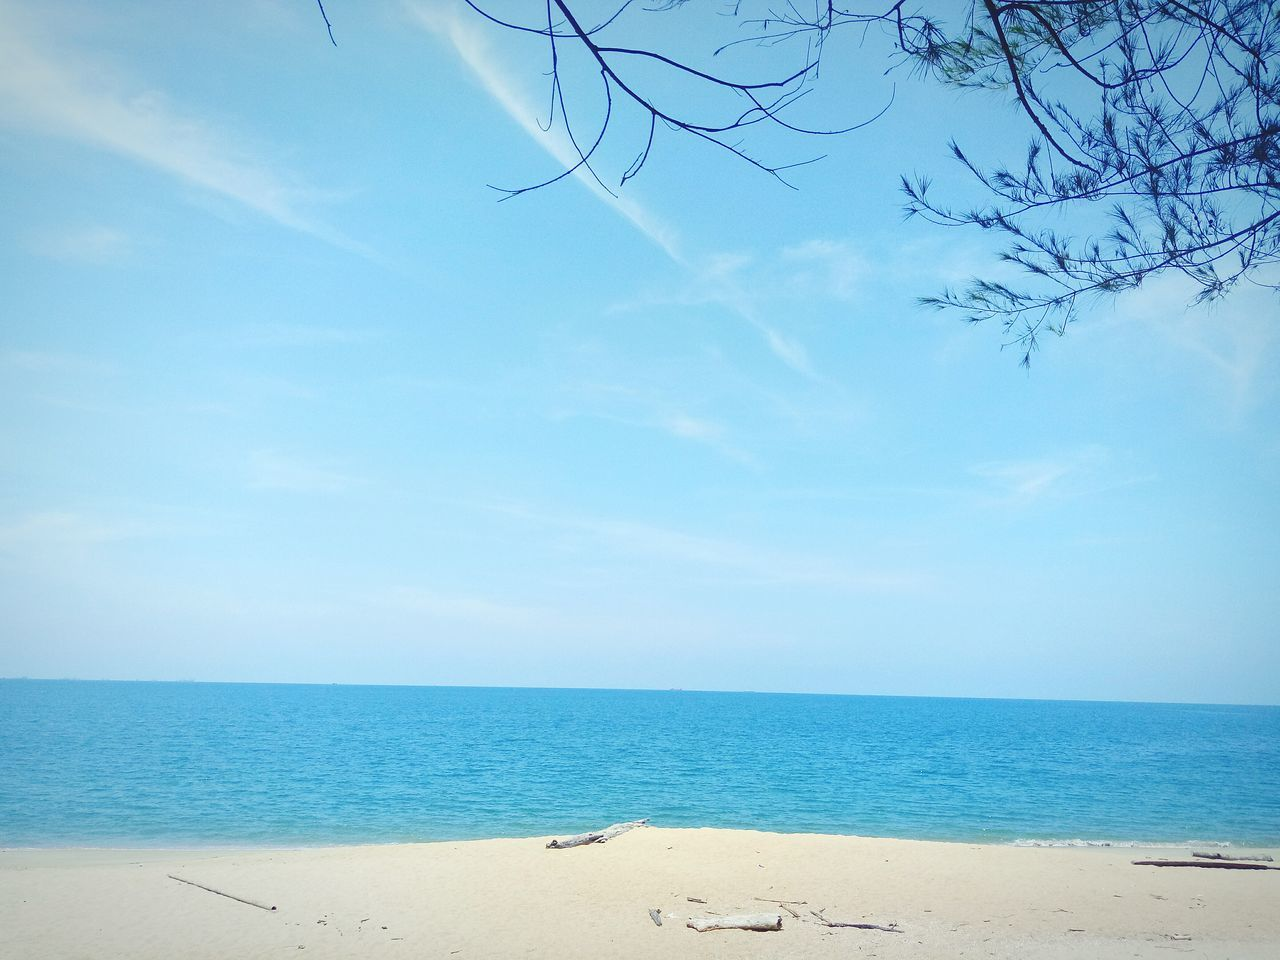 sea, horizon over water, beach, sky, beauty in nature, nature, sand, scenics, tranquil scene, tranquility, water, no people, day, cloud - sky, outdoors, blue